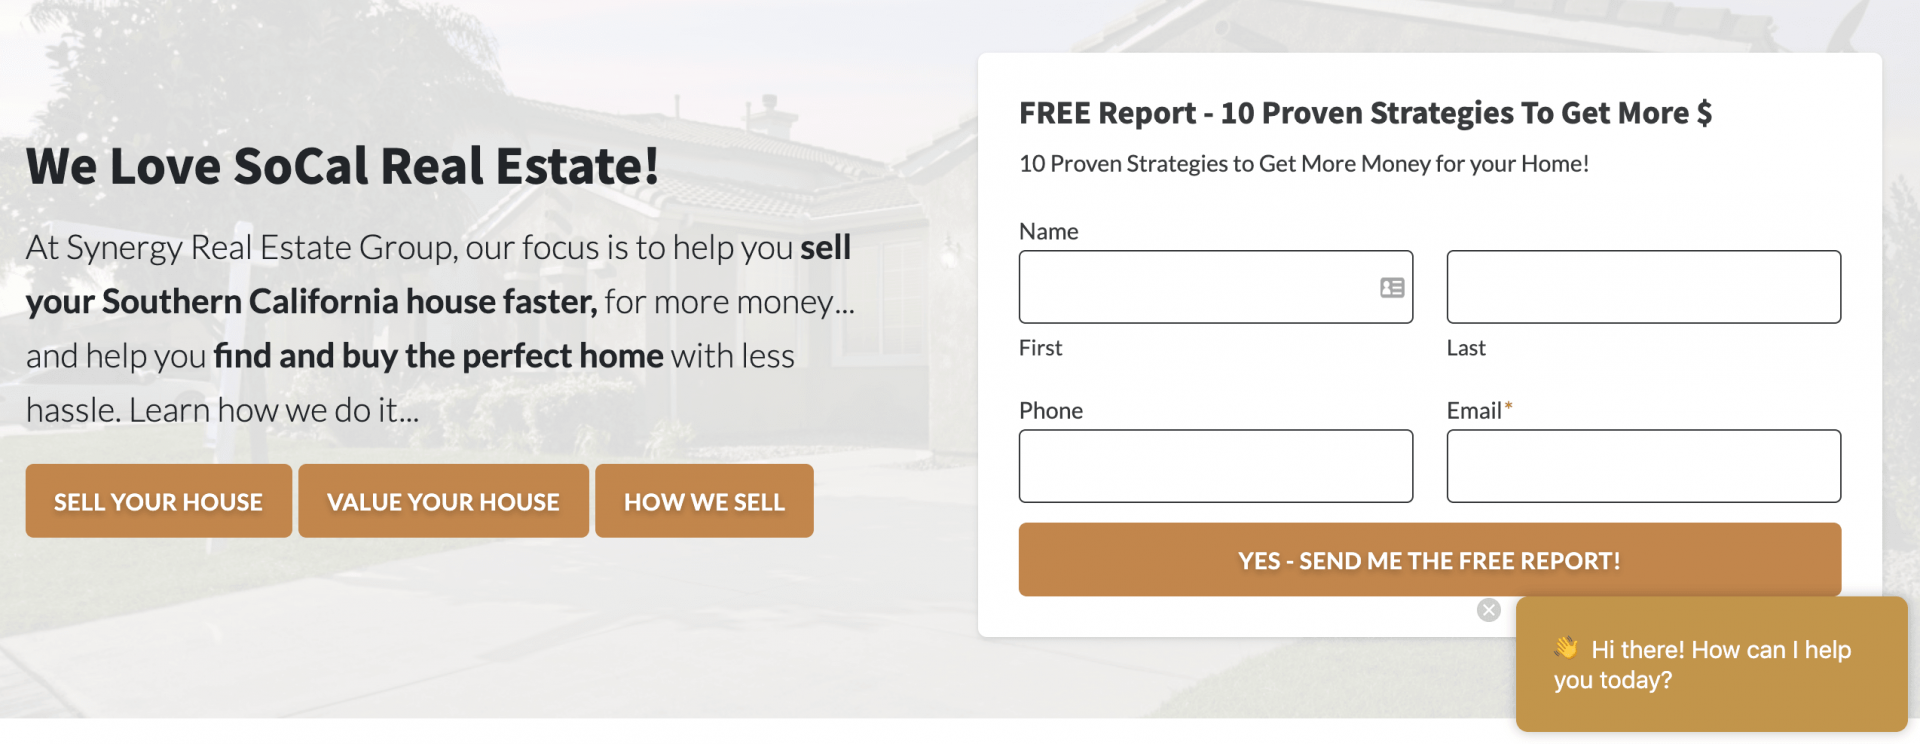 real-estate-agent-website-marketing-website-form